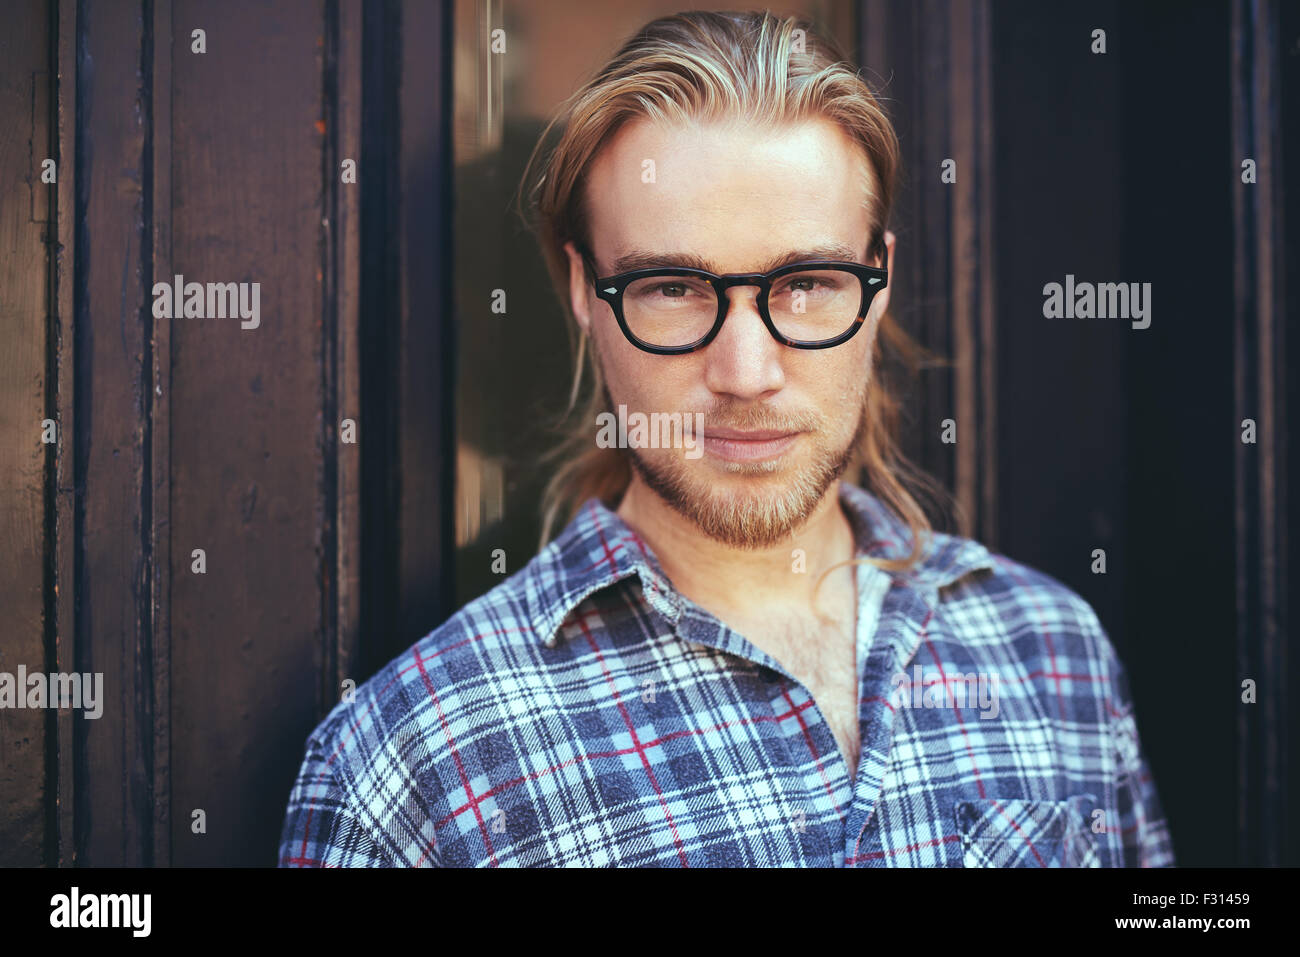 closeup portrait of blond man with long hair and glasses. Thoughtful man - Stock Image